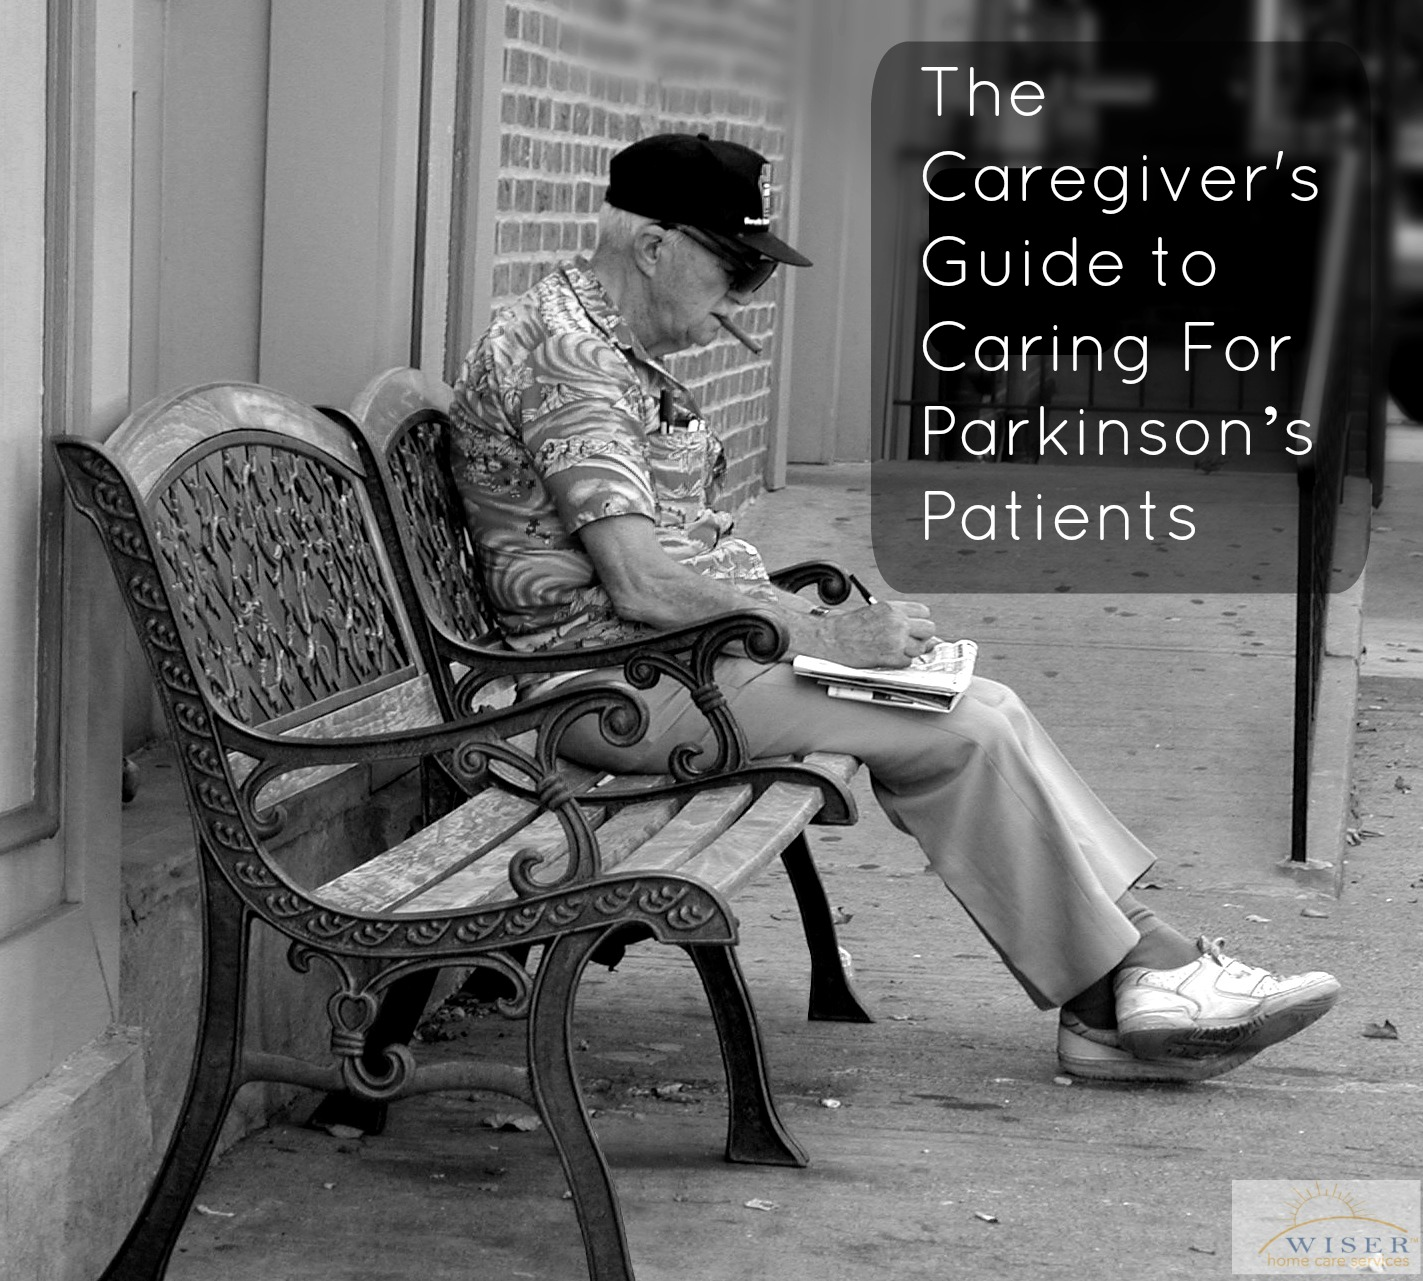 More than 1 million Americans are living with Parkinson's and each year 60,000 more are diagnosed. These tips will help you care for Parkinson's patients.